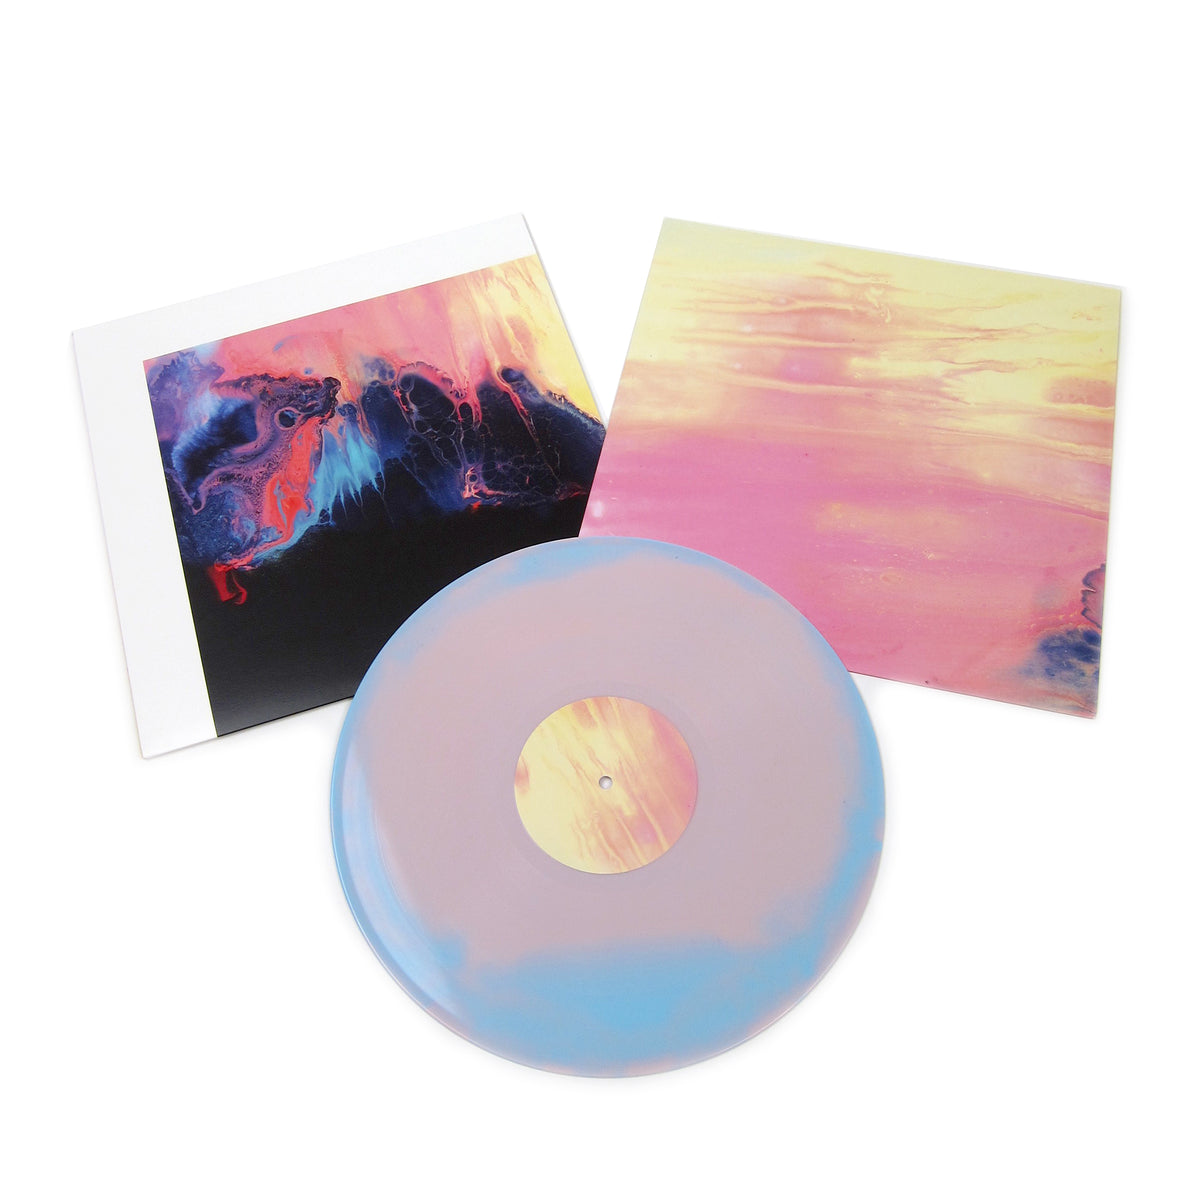 Shigeto: No Better Time Than Now (Colored Vinyl) Vinyl LP - Turntable Lab Exclusive